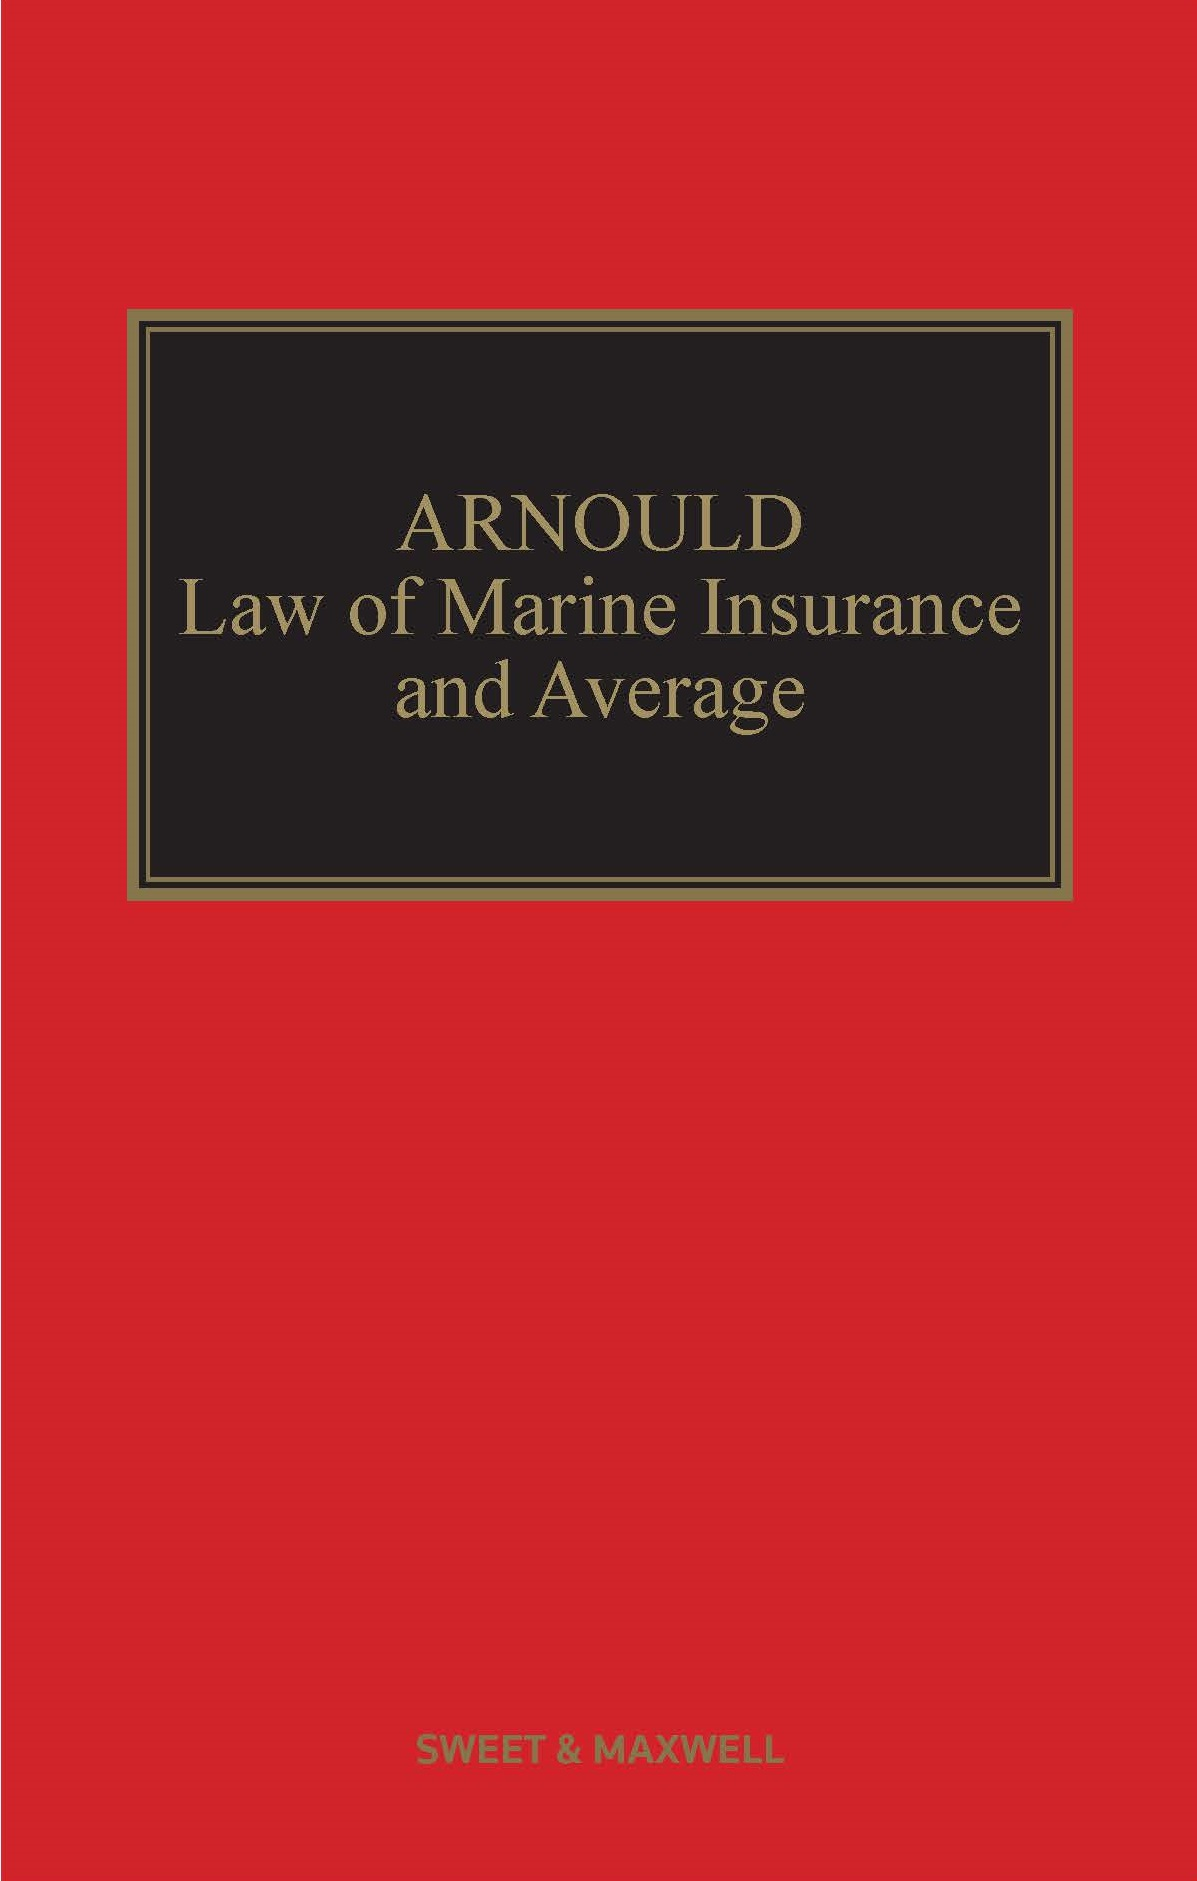 Arnould's Law of Marine Insurance and Average 19th edition